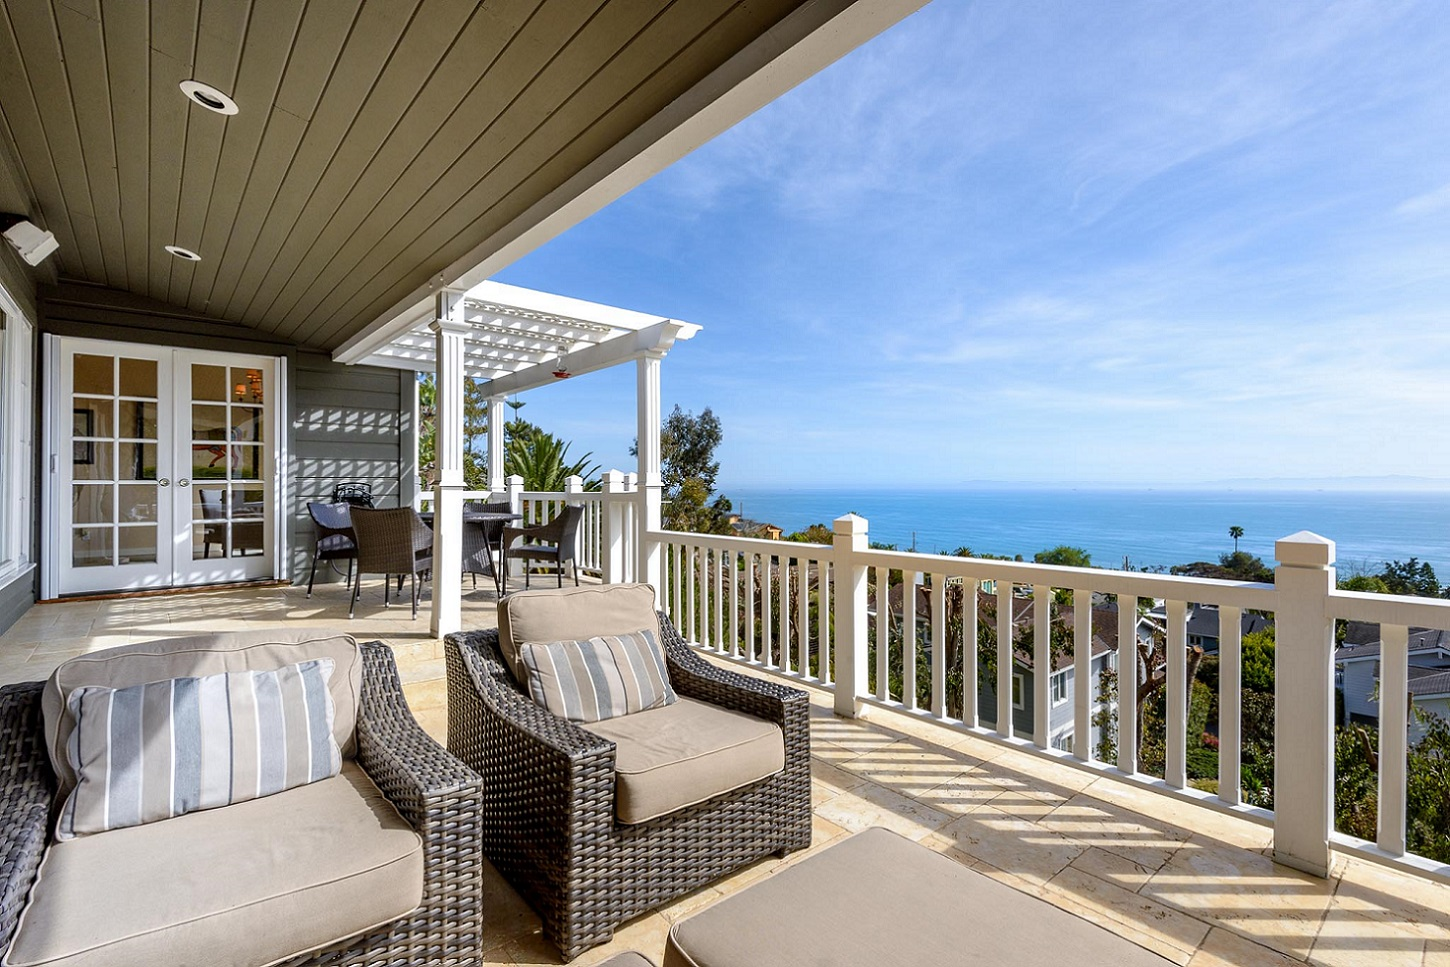 SOLD: $2,395,000  Represented Seller  2425 Whitney Avenue, Summerland, CA 93067 3 beds 3 baths 3,216 sqft